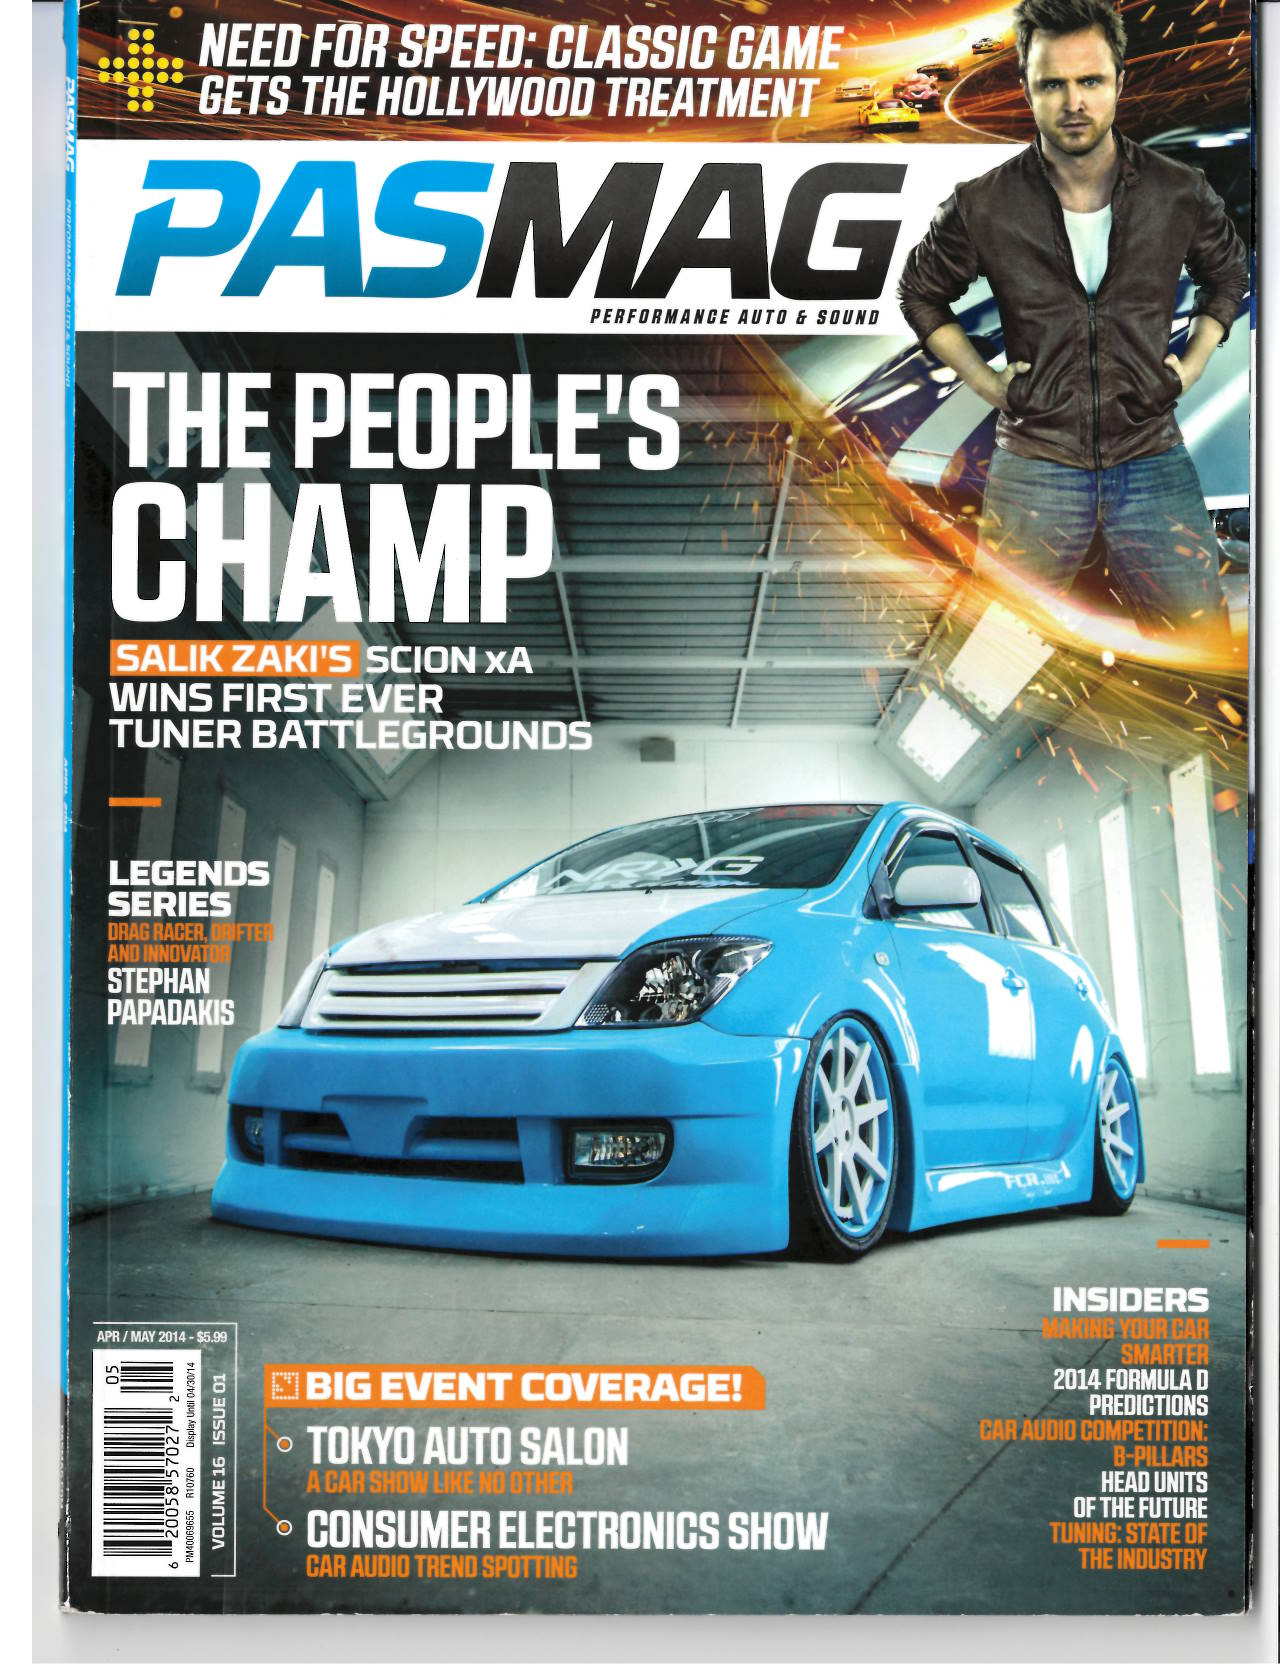 PasMag Article - April 2014 (1)_Page_1.jpg